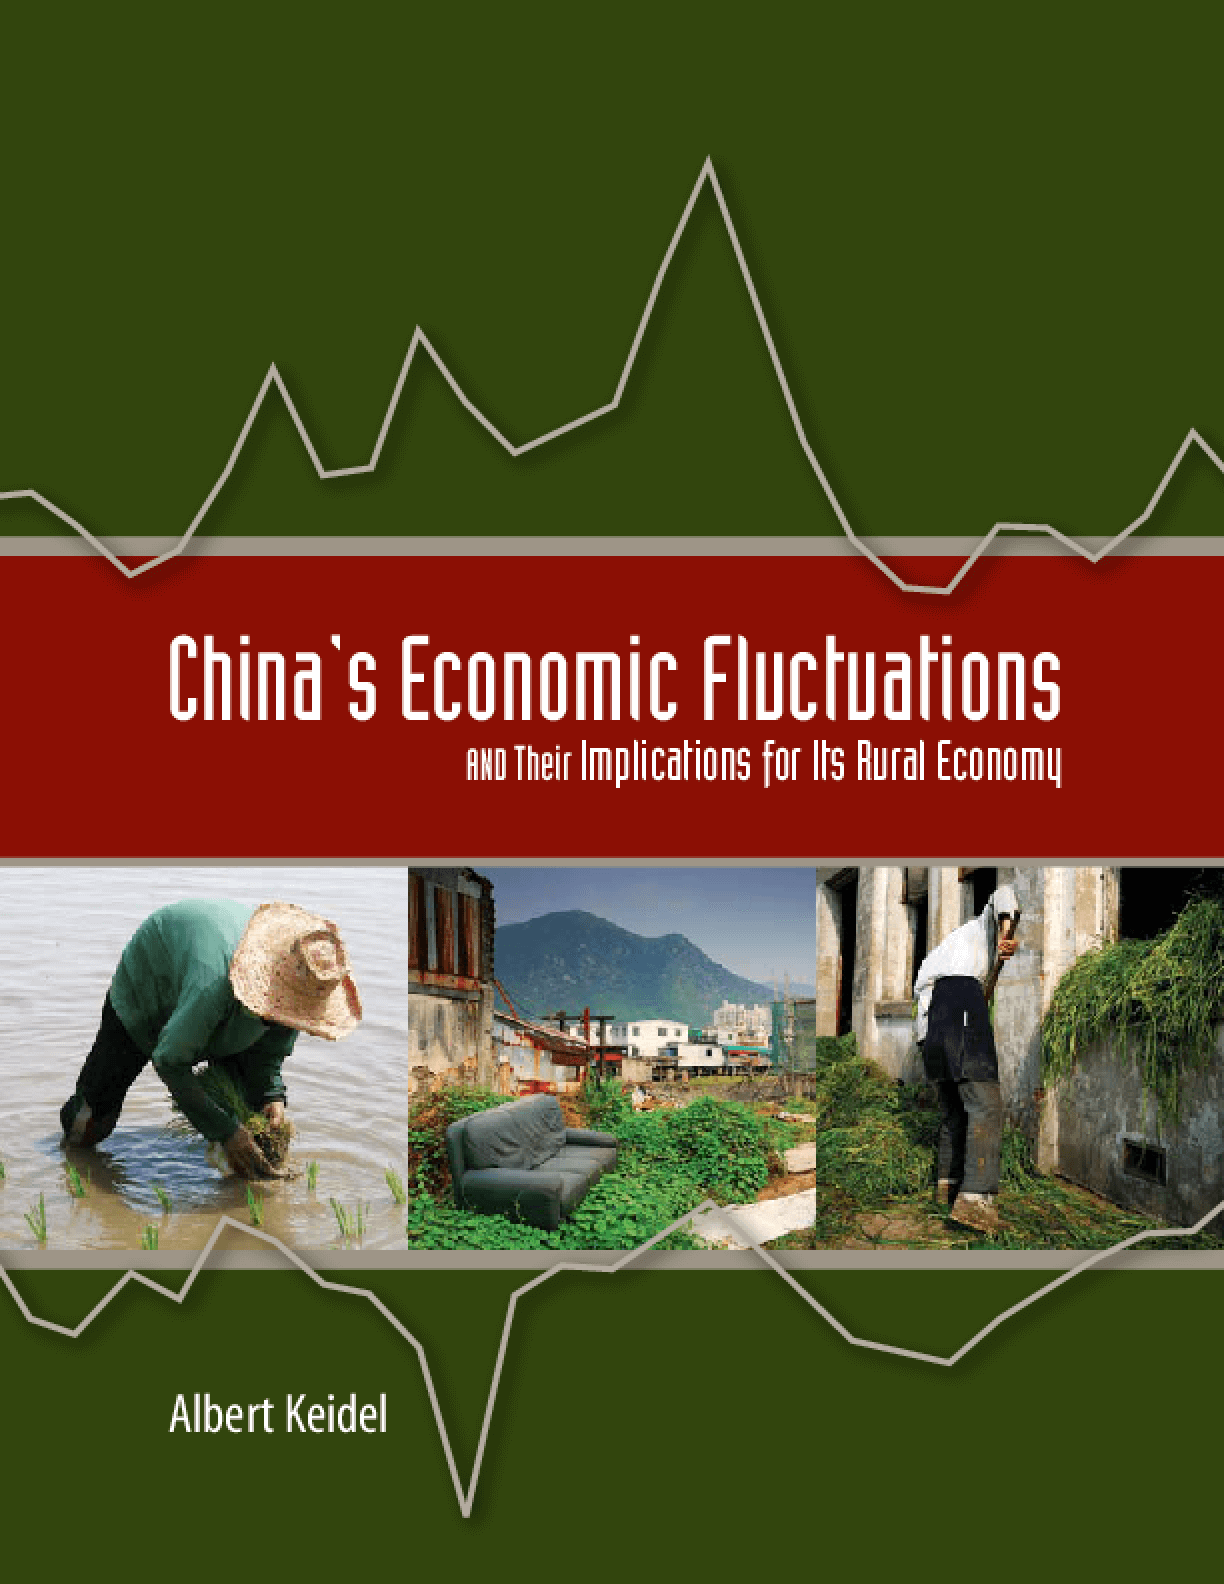 China's Economic Fluctuations and Their Implications for Its Rural Economy